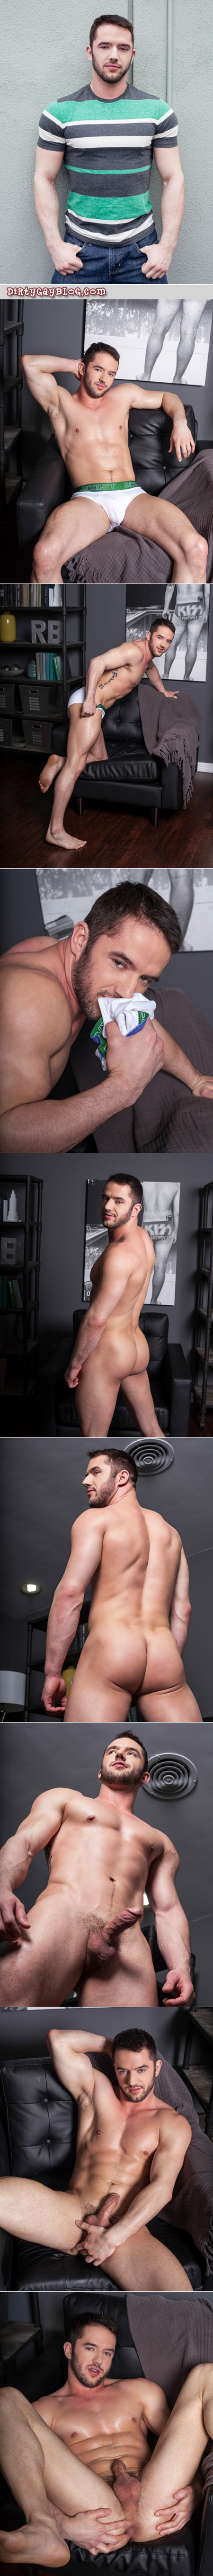 Young muscle guy with a beard sniffs his sweaty briefs and fingers his tight, hairy butthole.